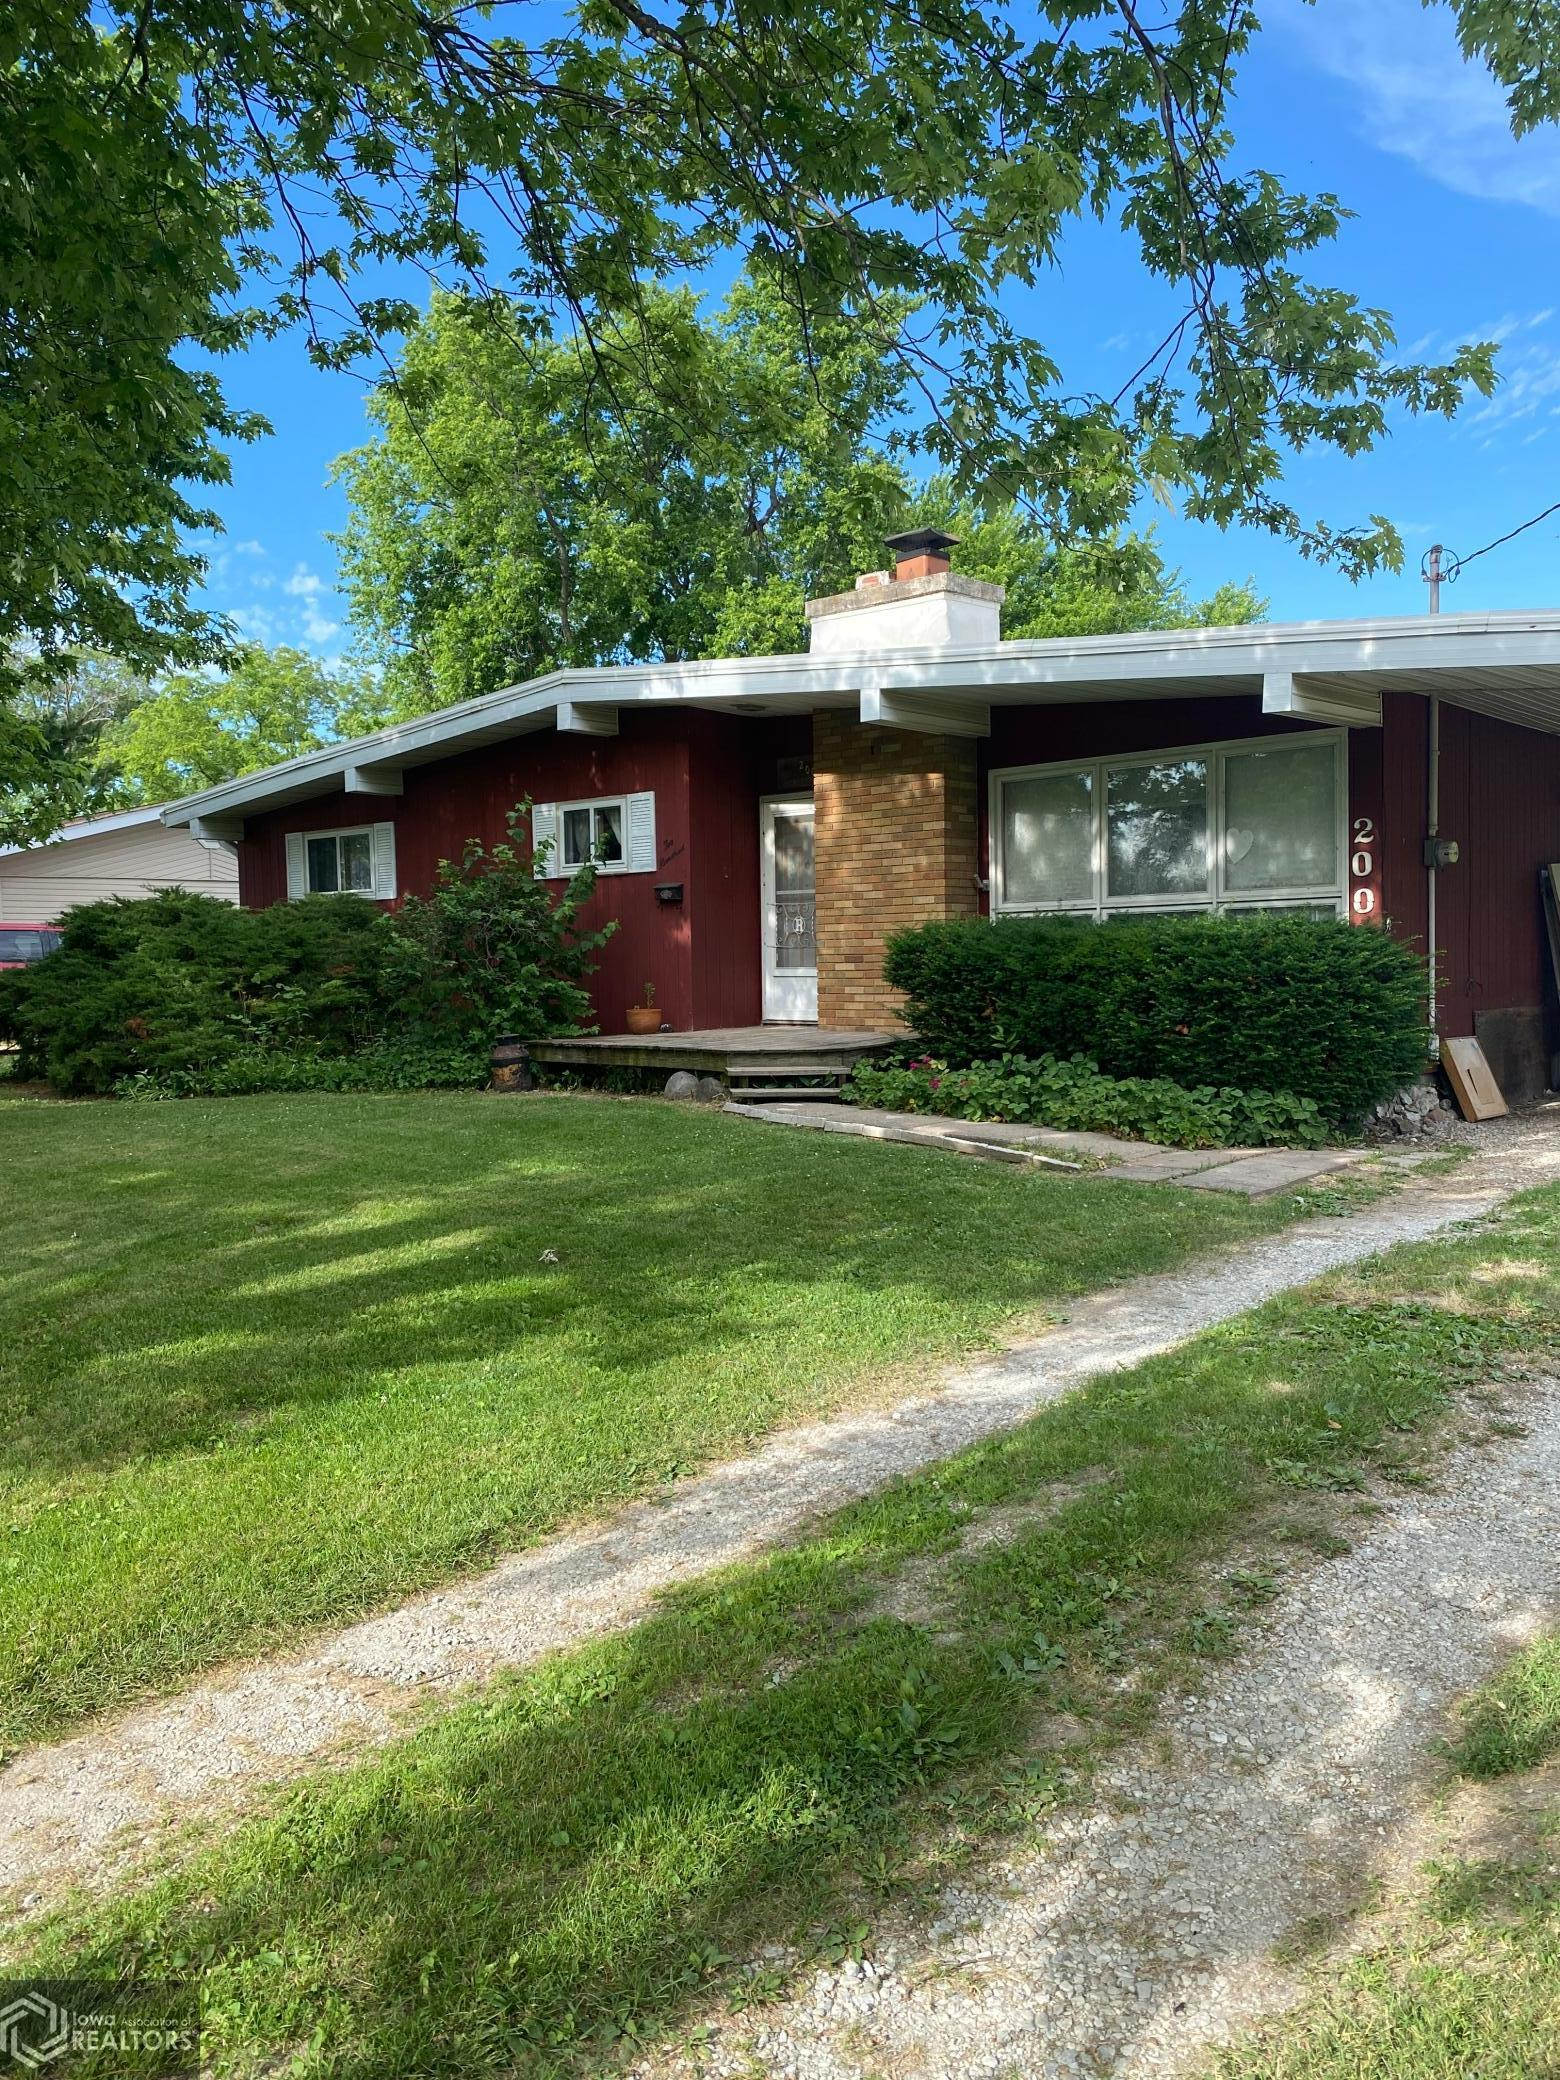 200 20th Street, Hamilton, Illinois 62341, 3 Bedrooms Bedrooms, ,1 BathroomBathrooms,Single Family,For Sale,20th,6010150